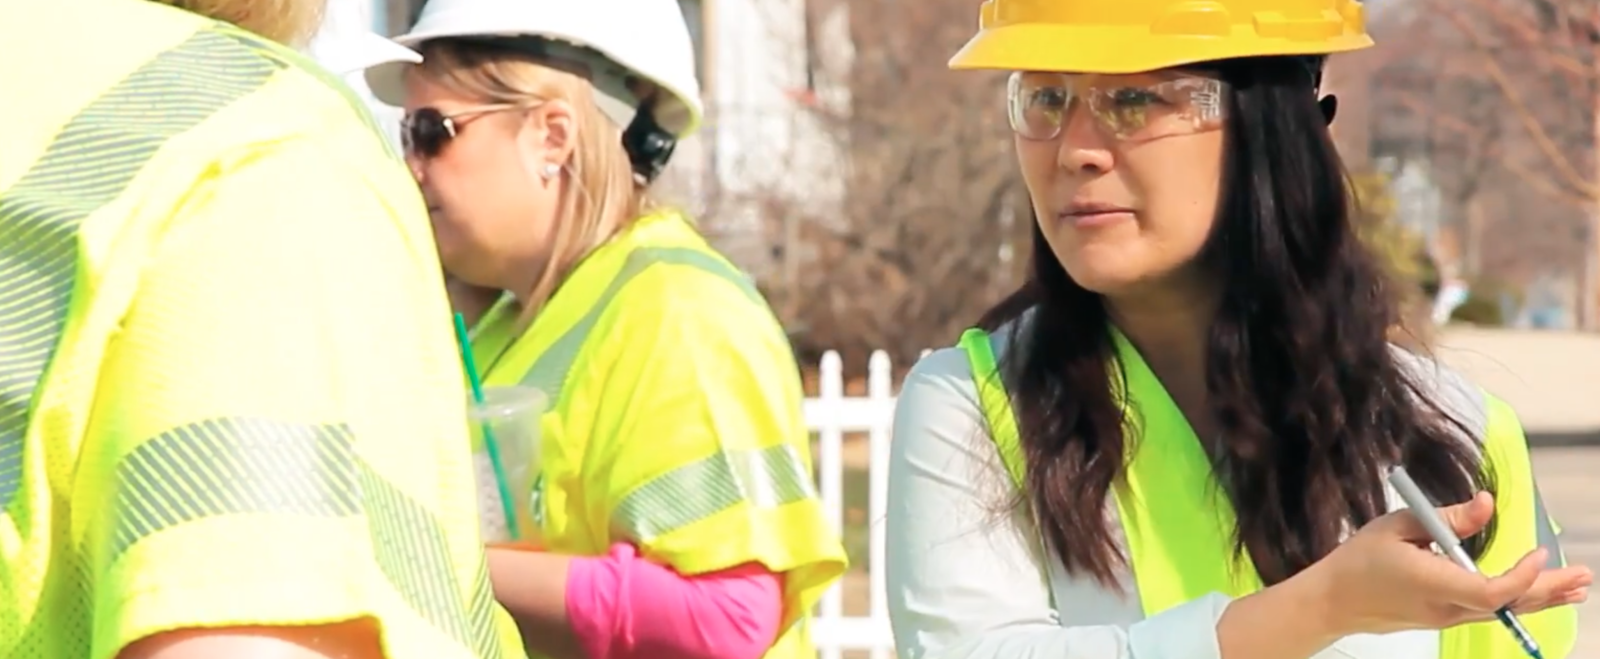 A woman in a hard hat talks to other women while measuring gas leaks.